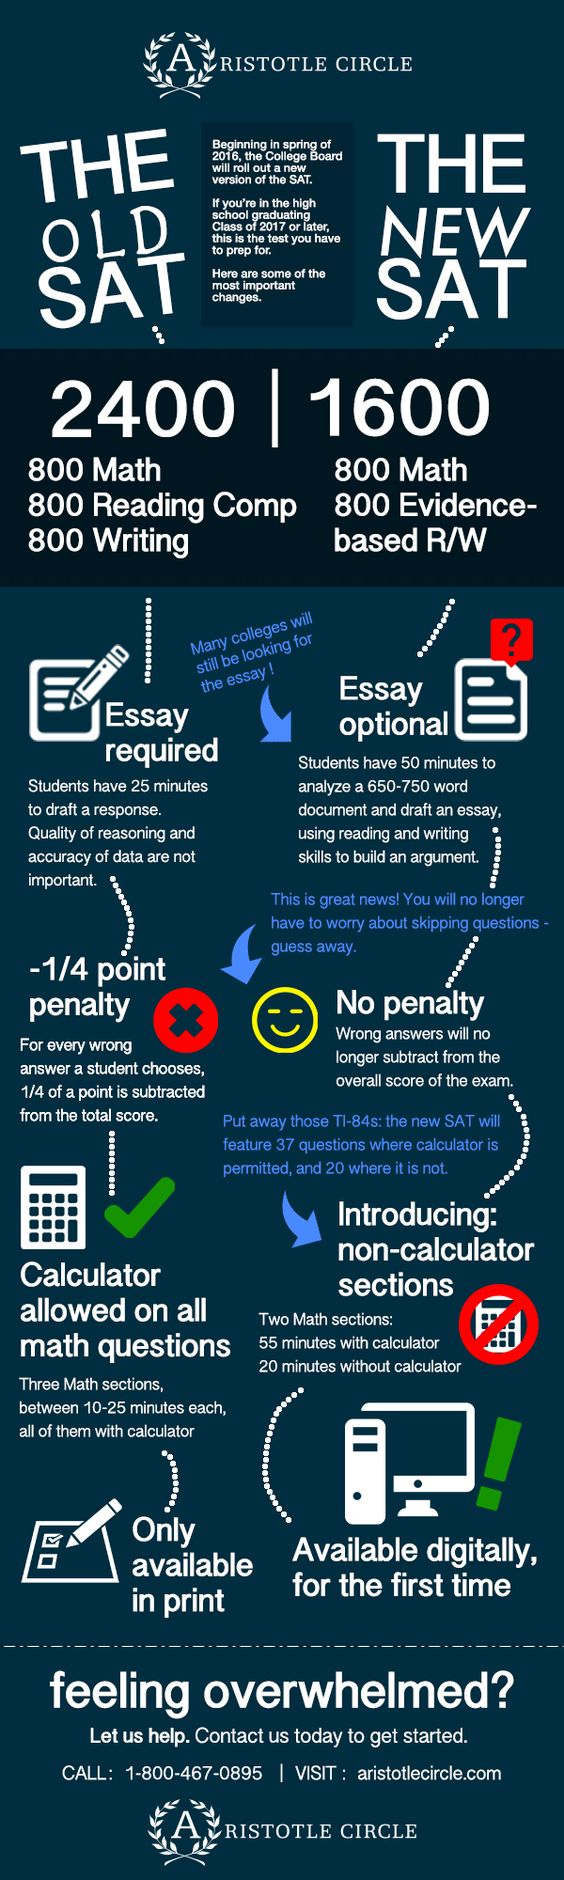 The Old SAT vs. The New SAT: Infographic | Aristotle Circle